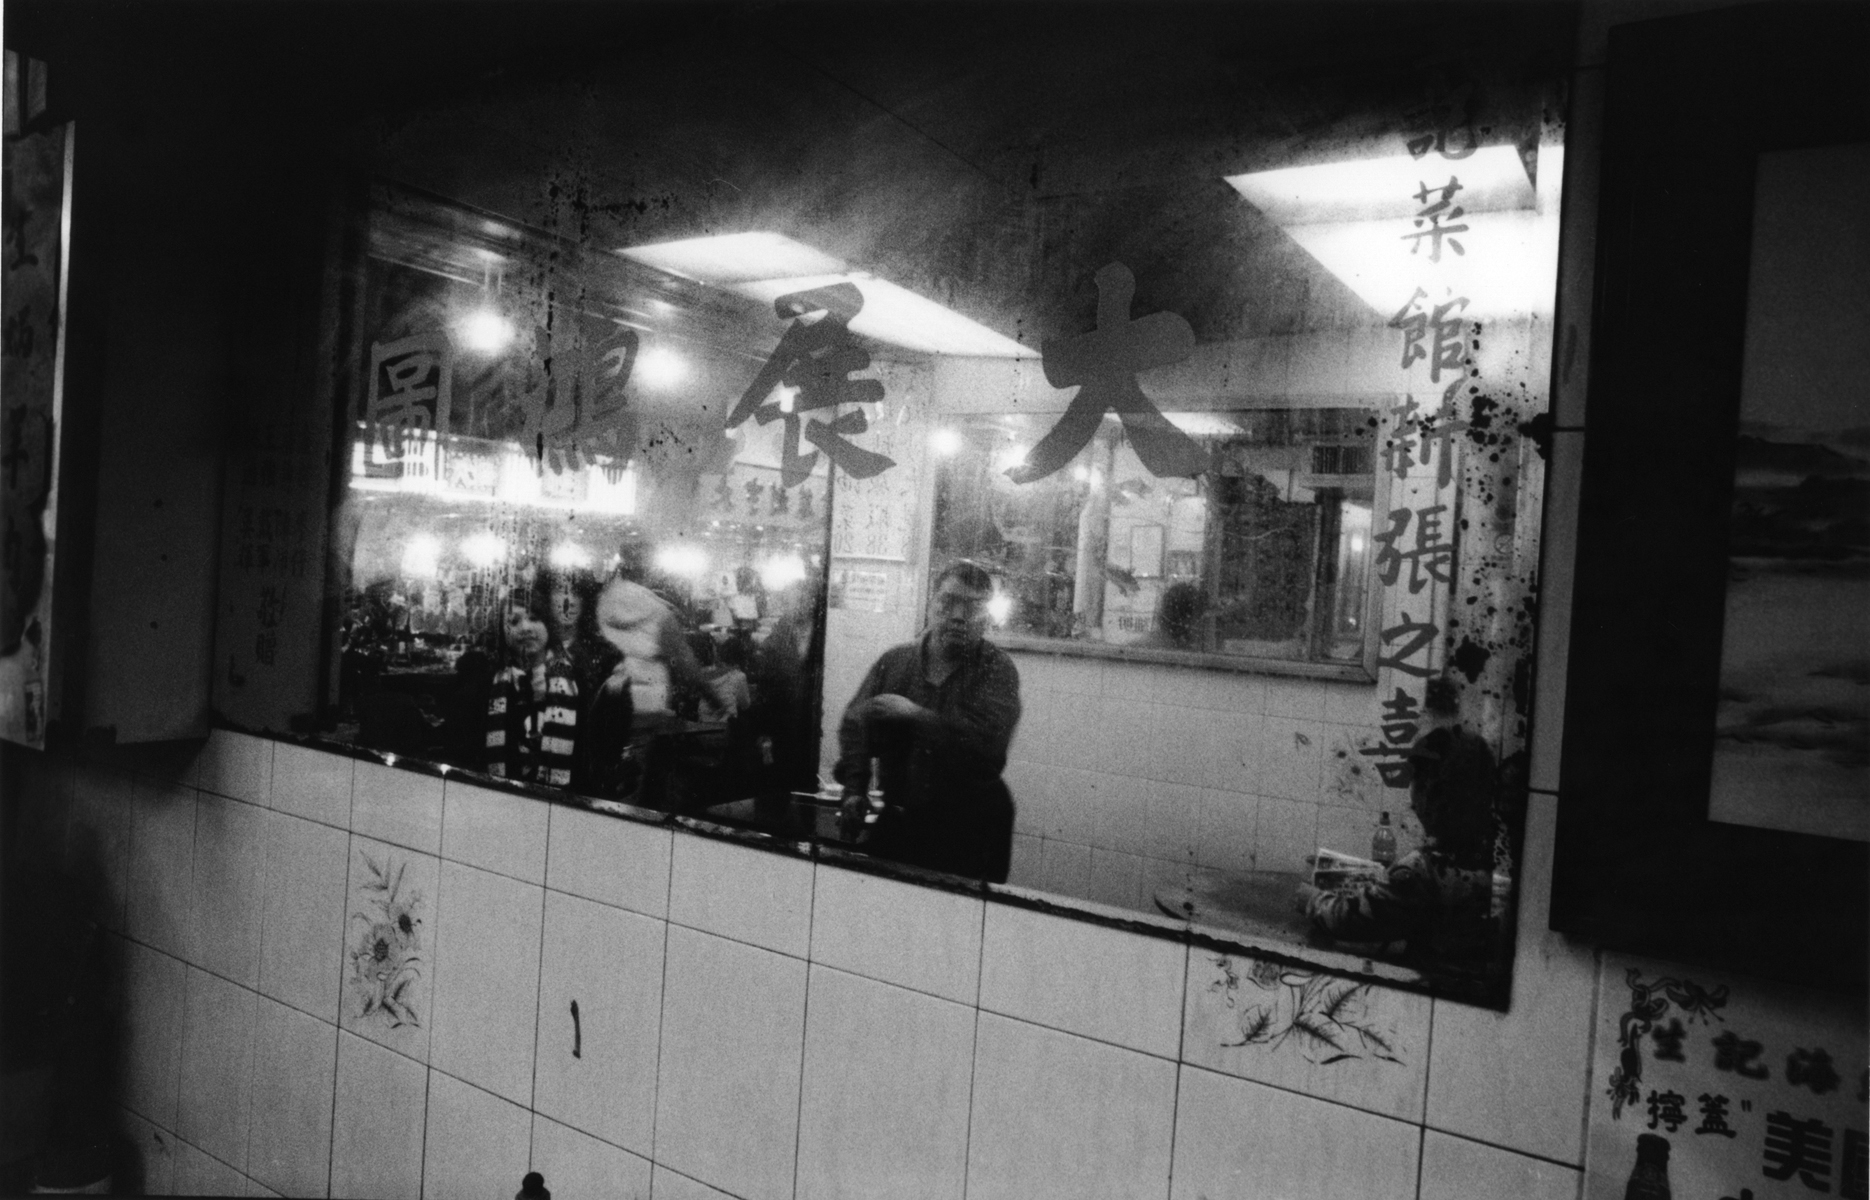 One of the many popular, late nitght destinations, offering inexpensive delights for residents and night market shoppers in Mong Kok. The engraving on the mirror, {quote}Spread Your Wings,{quote} is believed to reflect around the restaurant, bringing prosperity and good fortune to the owner.Kowloon Peninsula, Hong Kong.